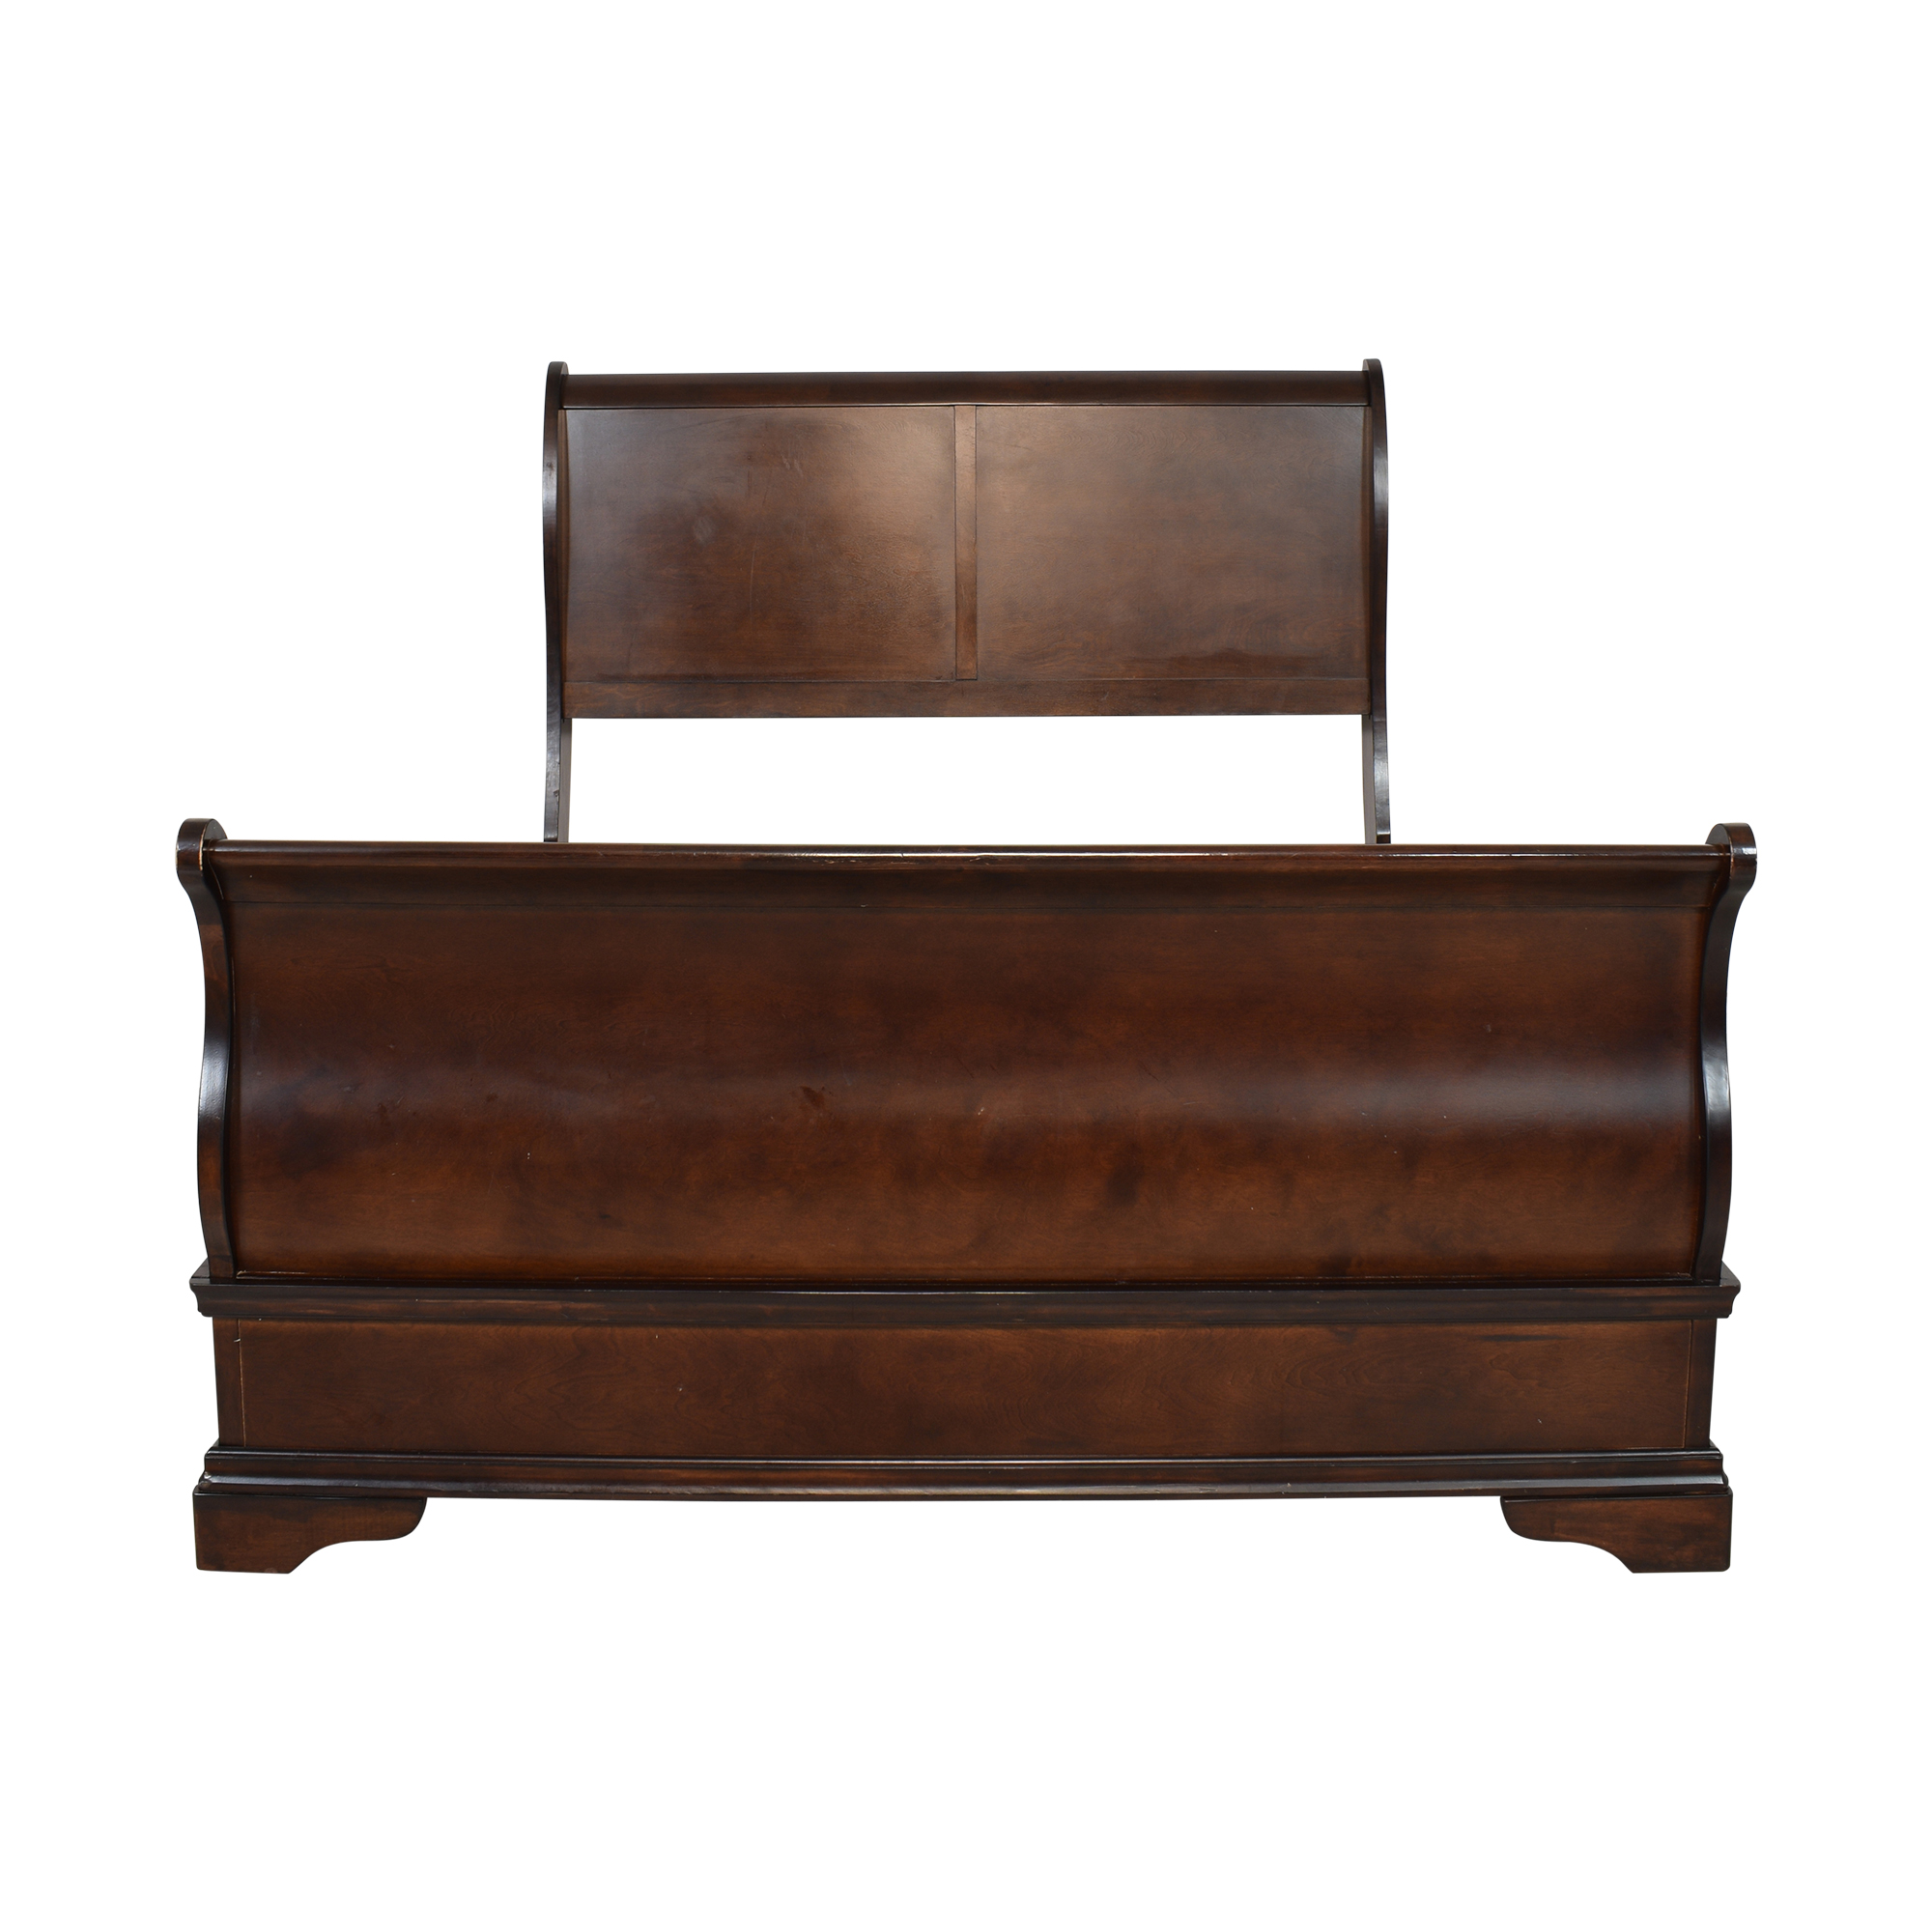 Raymour & Flanigan Queen Bed sale